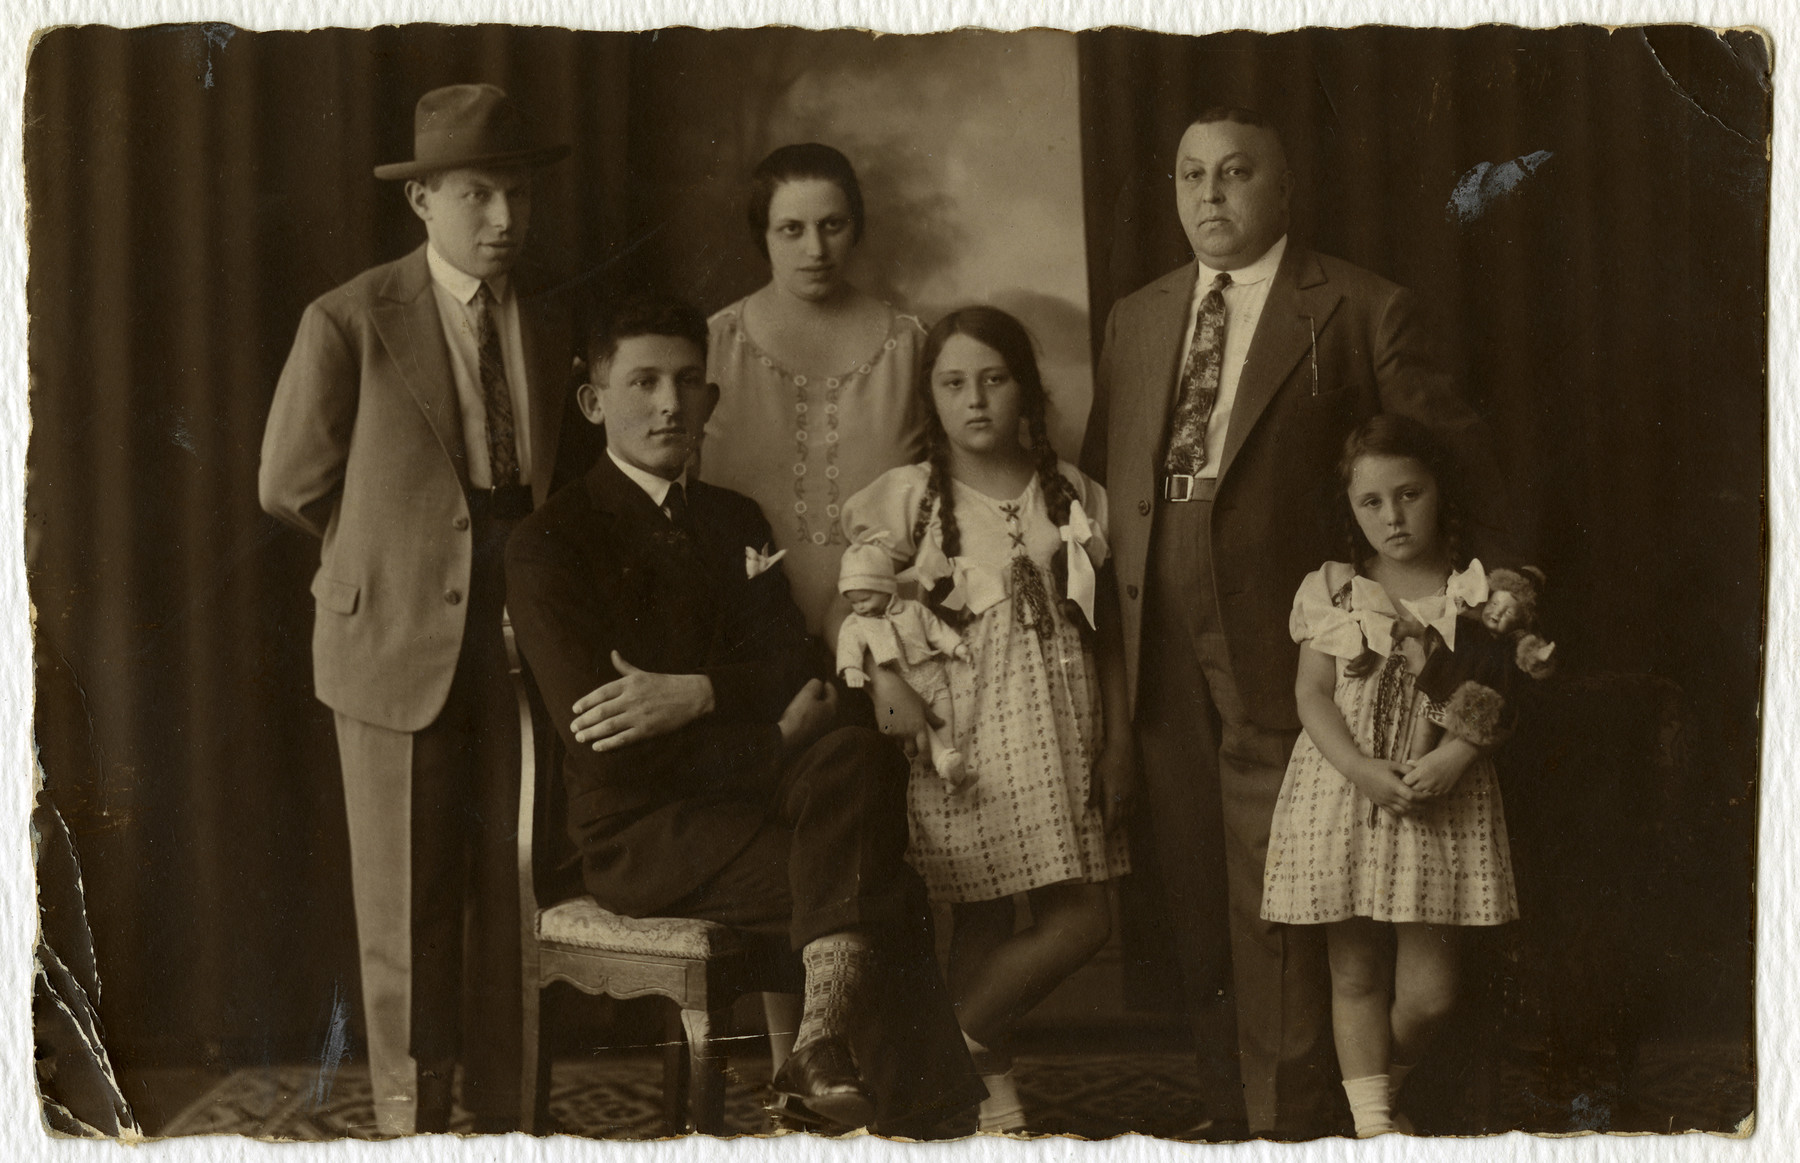 Prewar portrait of the Gold family.  From left to right are Hymie Schiffman, a cousin from Romania, Fanny Gold, Erna Schiffman, Peter Gold and Ruth Gold.